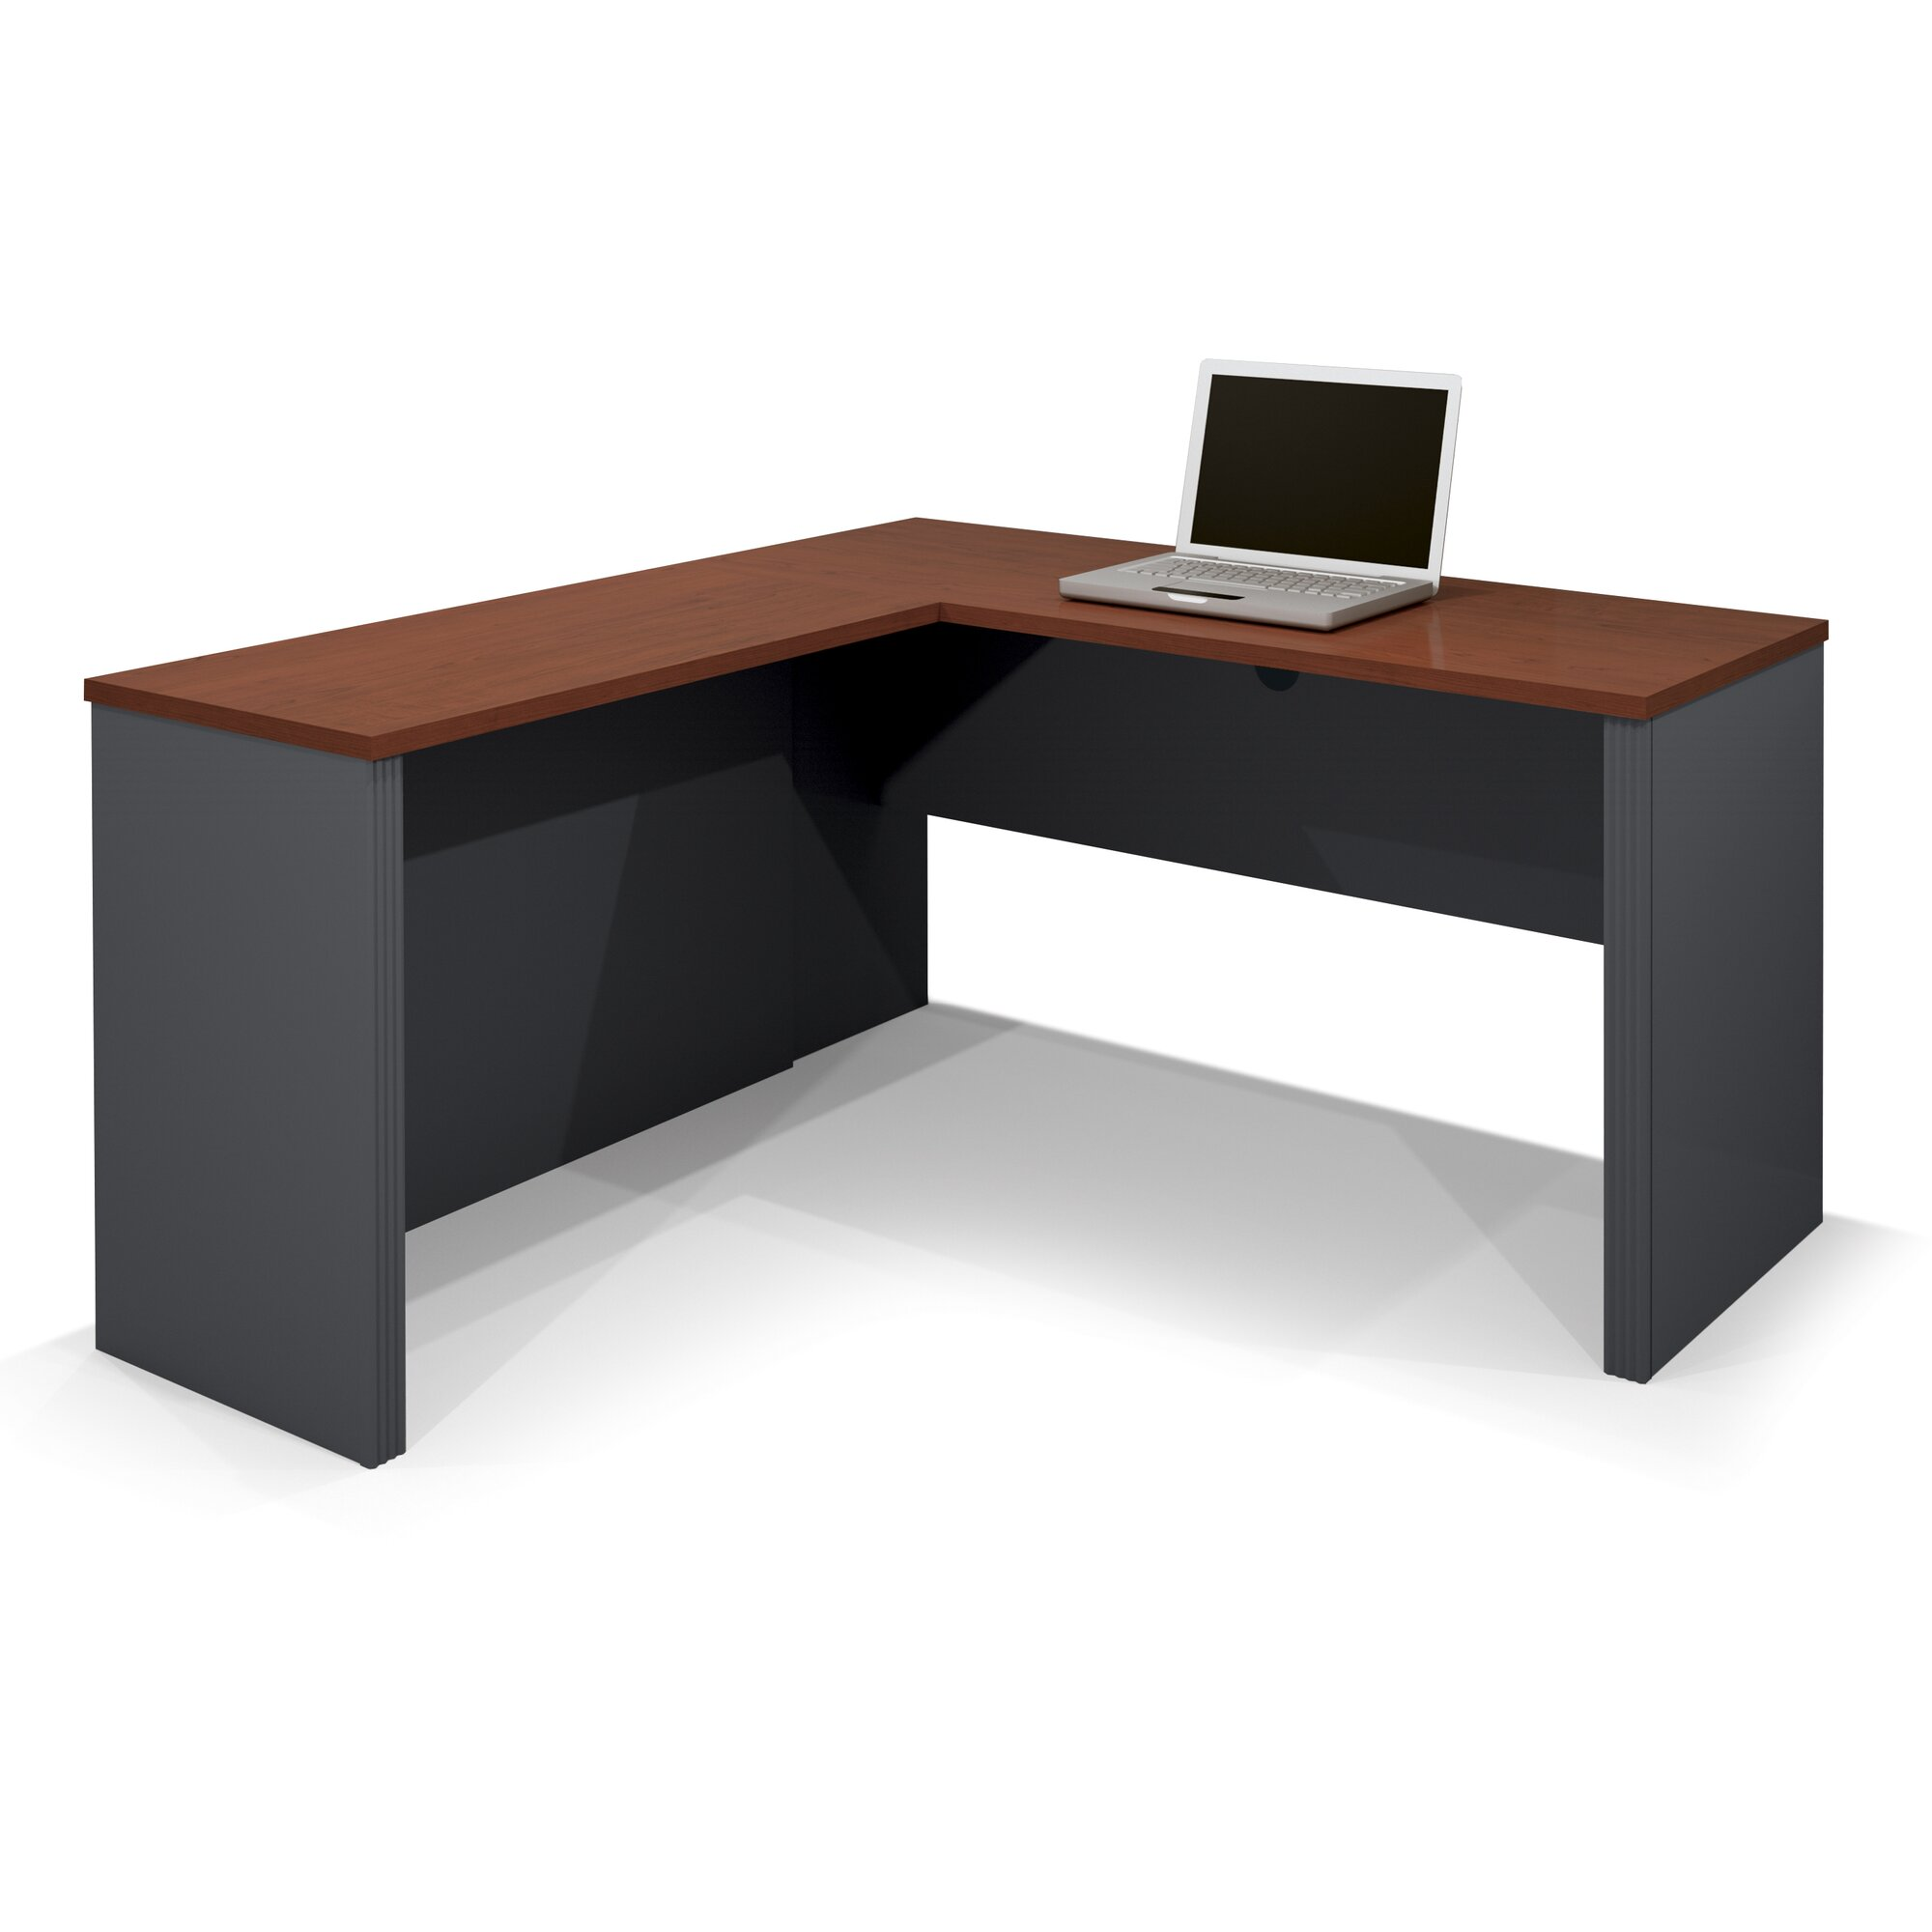 Wayfair Furniture Office Desk